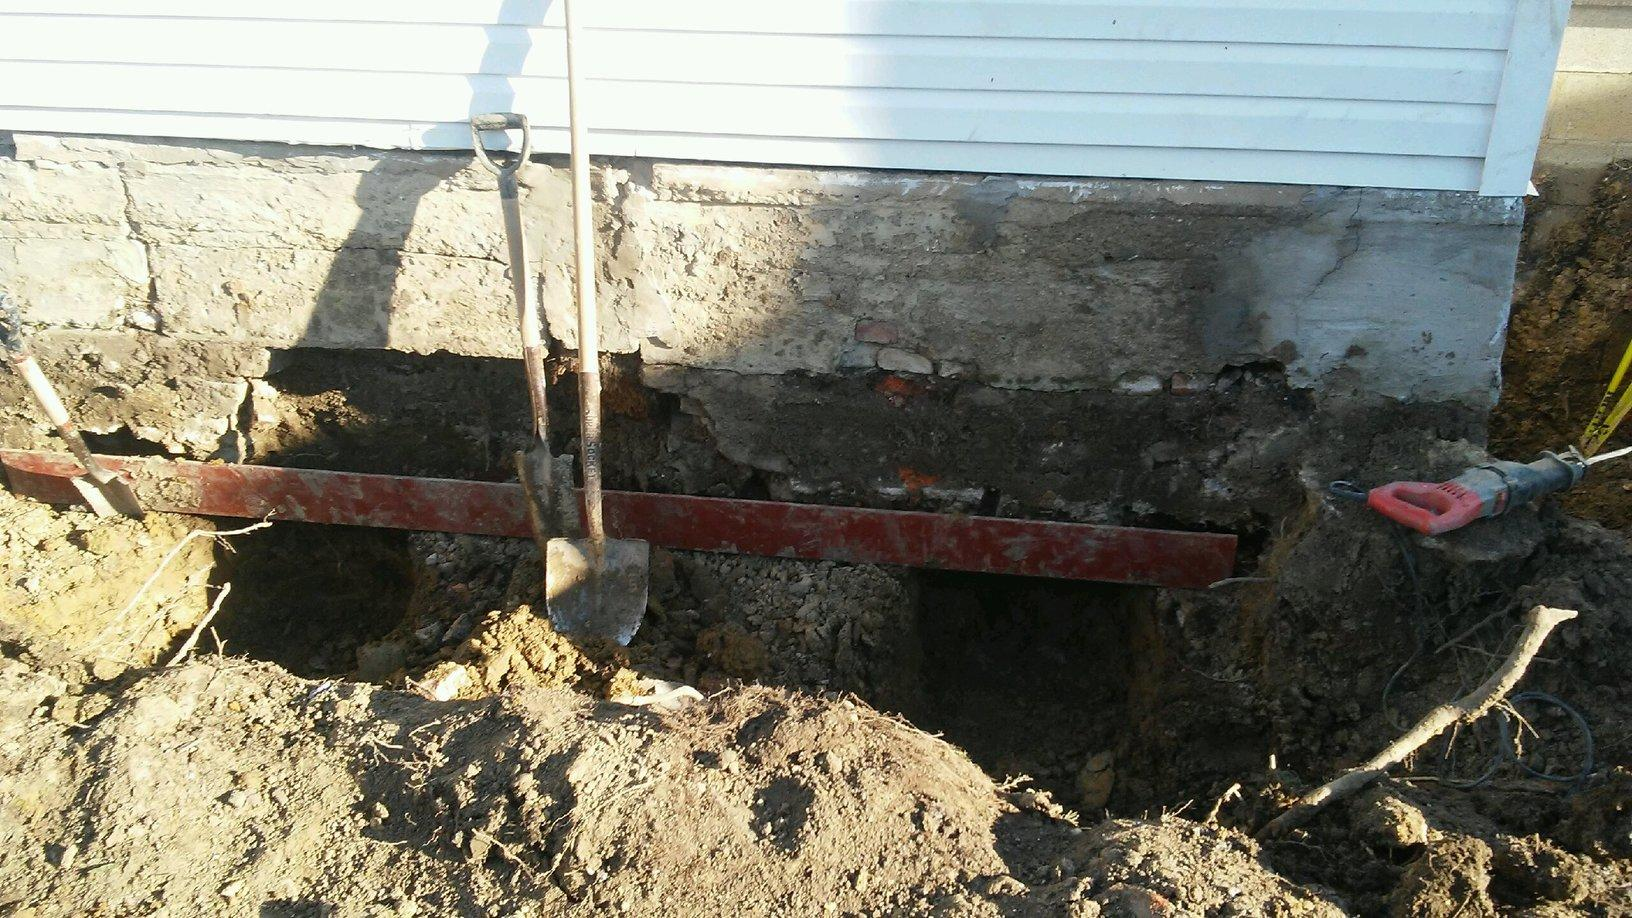 Foundation Repair Shoring Helical Pier Installation In Getzville Ny Problem Area With Sinking Foundation